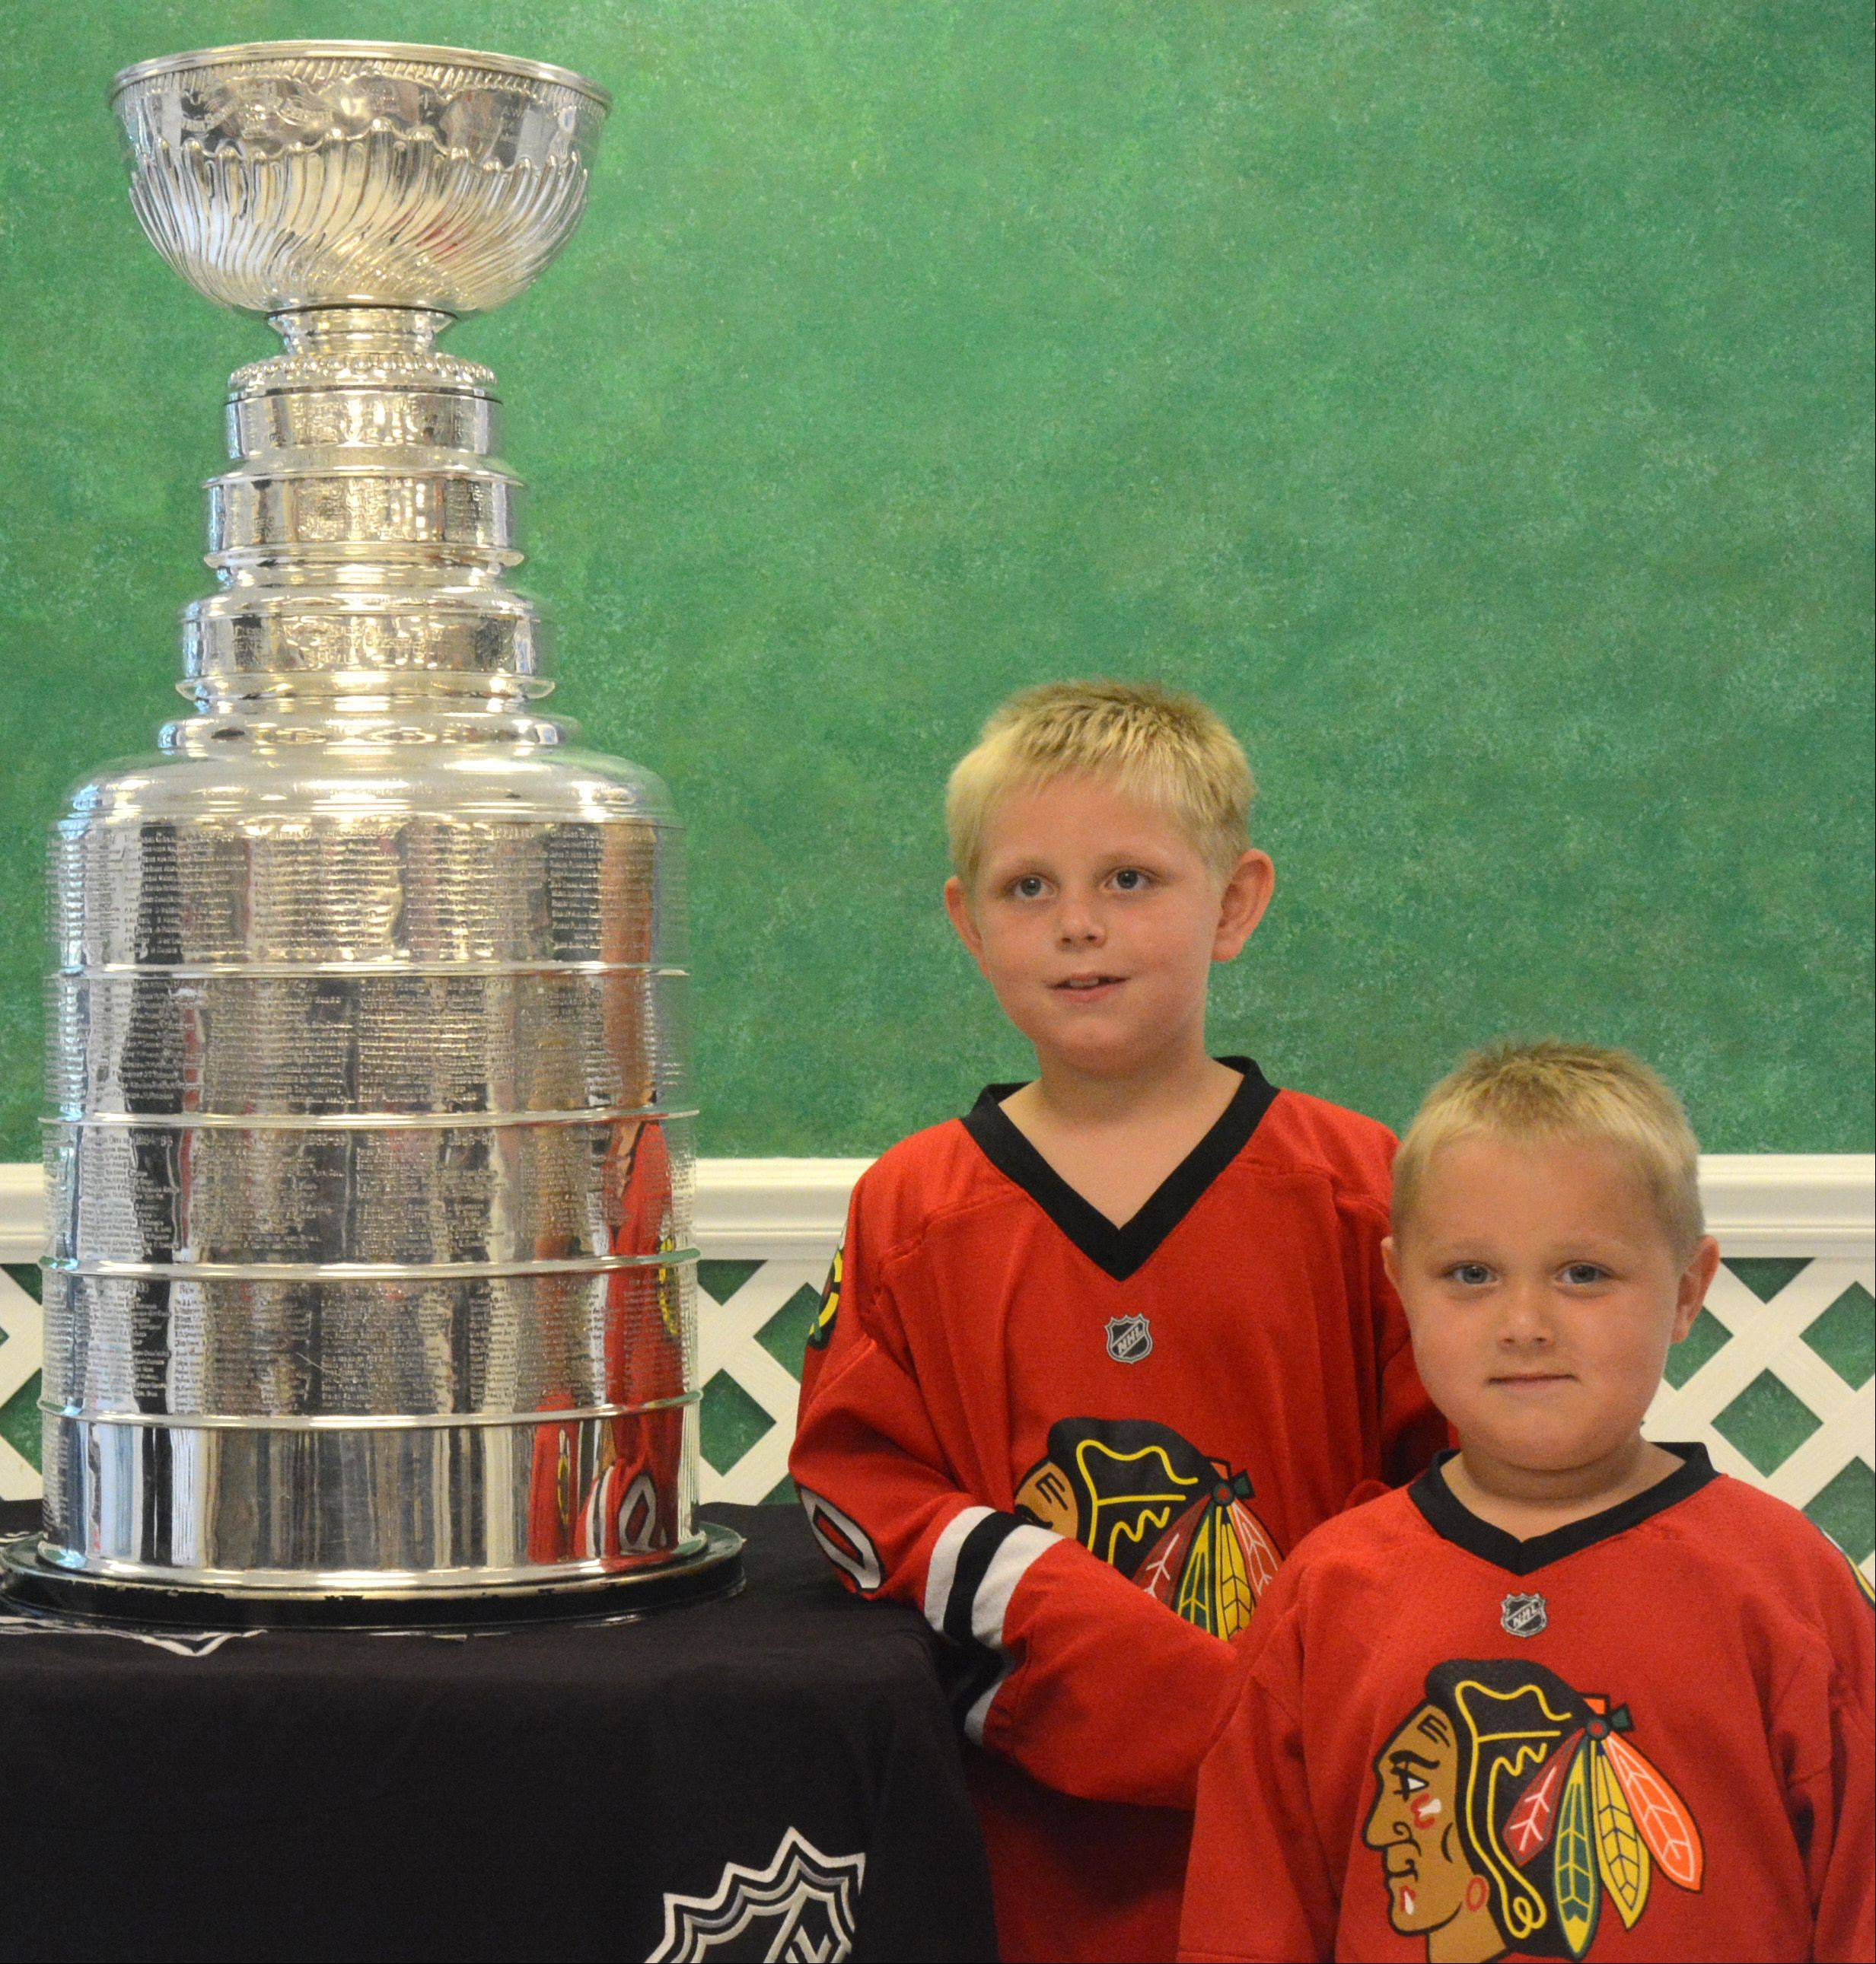 From left, Ryan Kowalski, 7, and Joshua Kowalski, 4, of Round Lake, take a picture with the Stanley Cup at the Daily Herald office Friday in Arlington Heights.